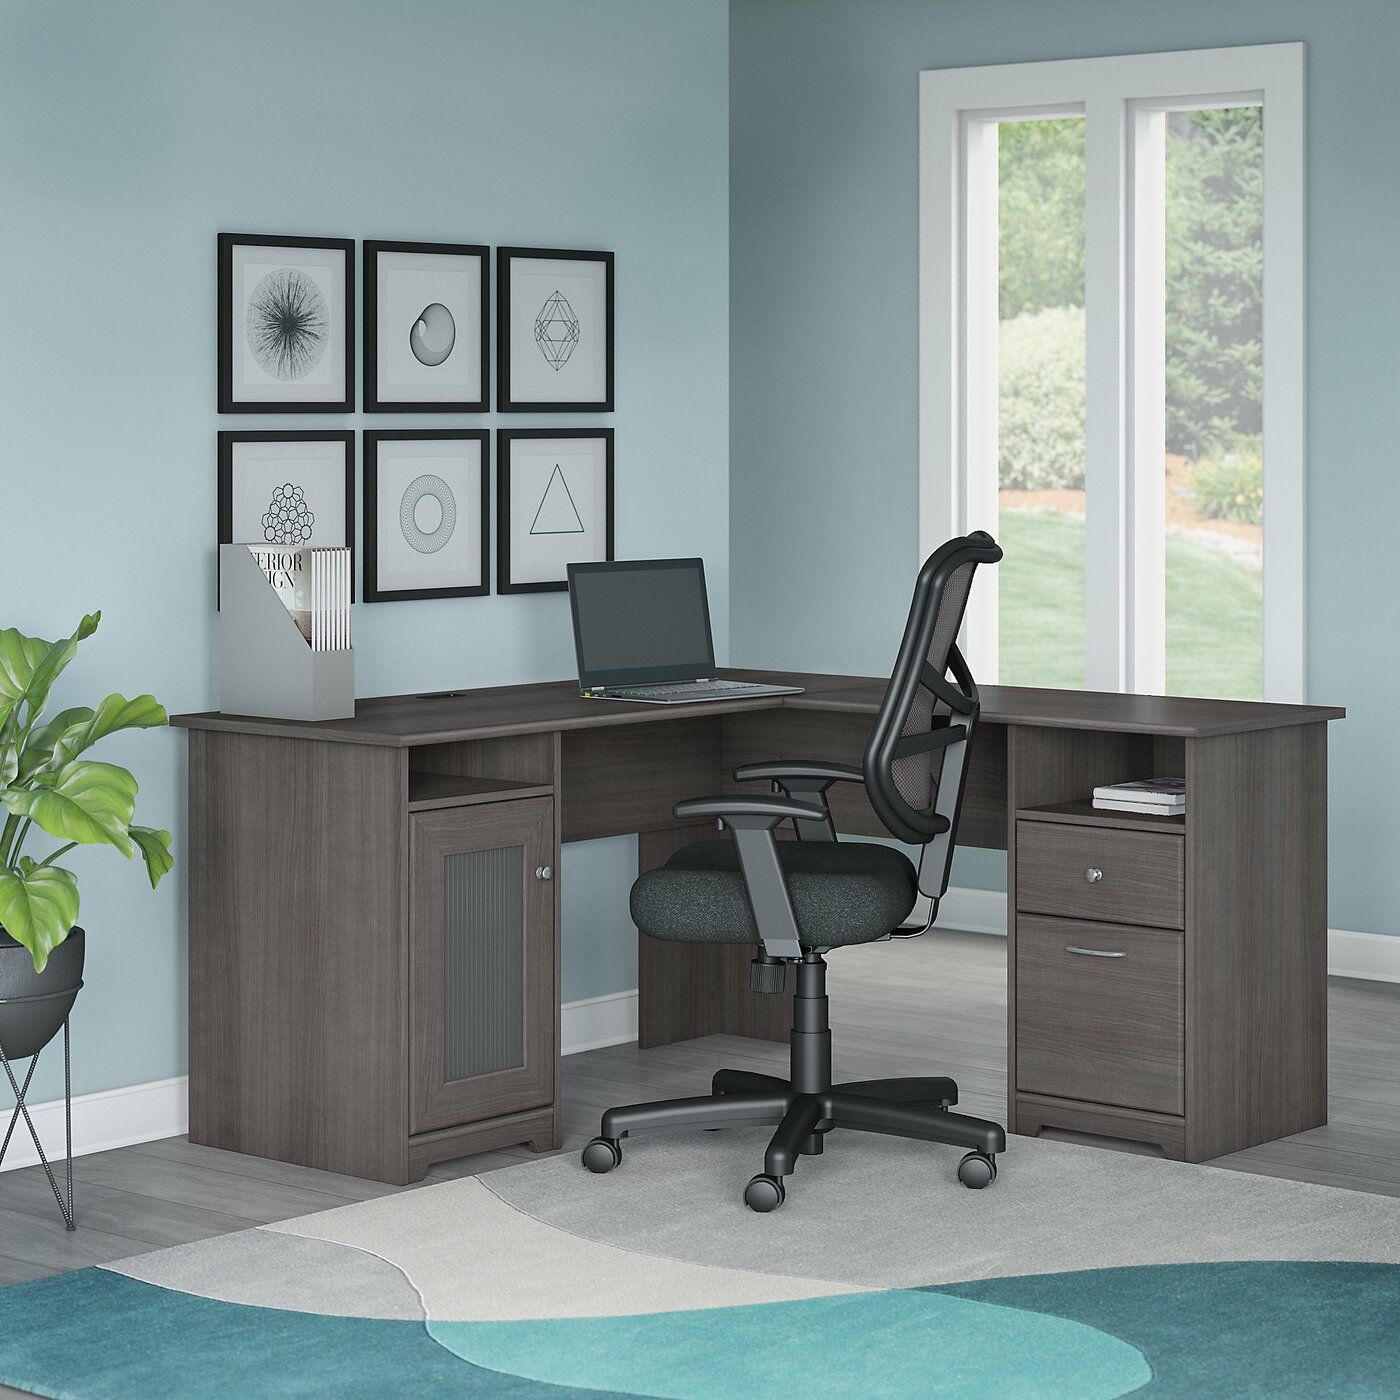 Hillsdale L Shape Desk And Chair Set Desk And Chair Set Furniture Affordable Office Furniture Office desk and chair set